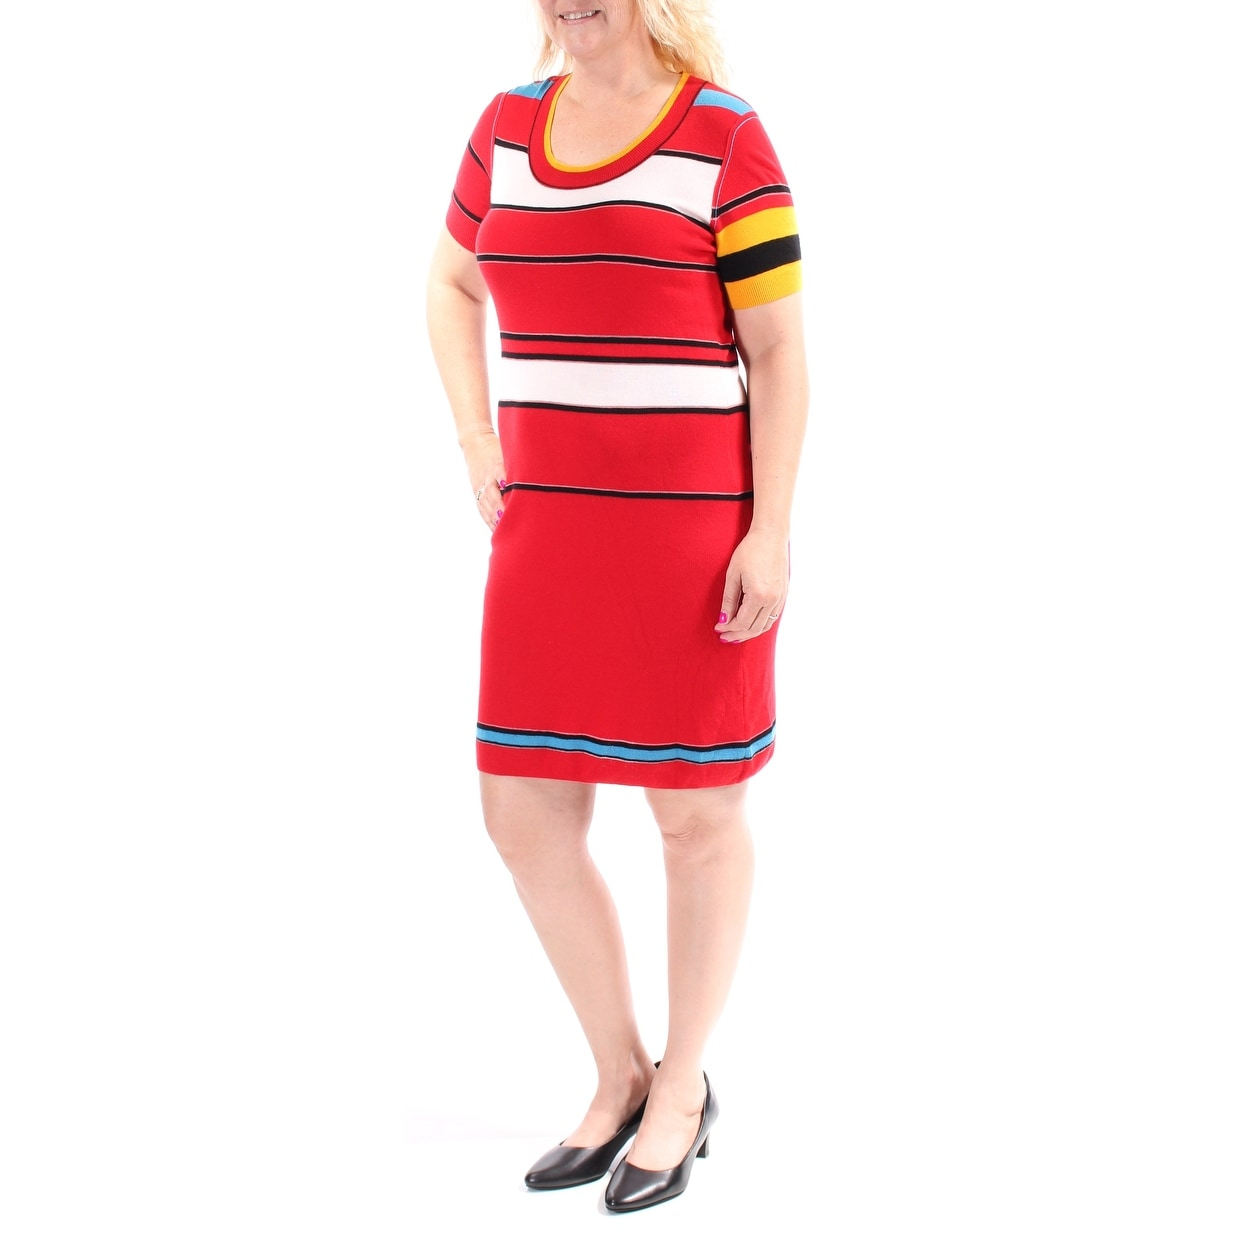 7f95ca11f0104d Shop SONIA RYKIEL Womens Red Striped Short Sleeve Jewel Neck Knee Length  Dress Size  12 - On Sale - Free Shipping Today - Overstock - 21304816